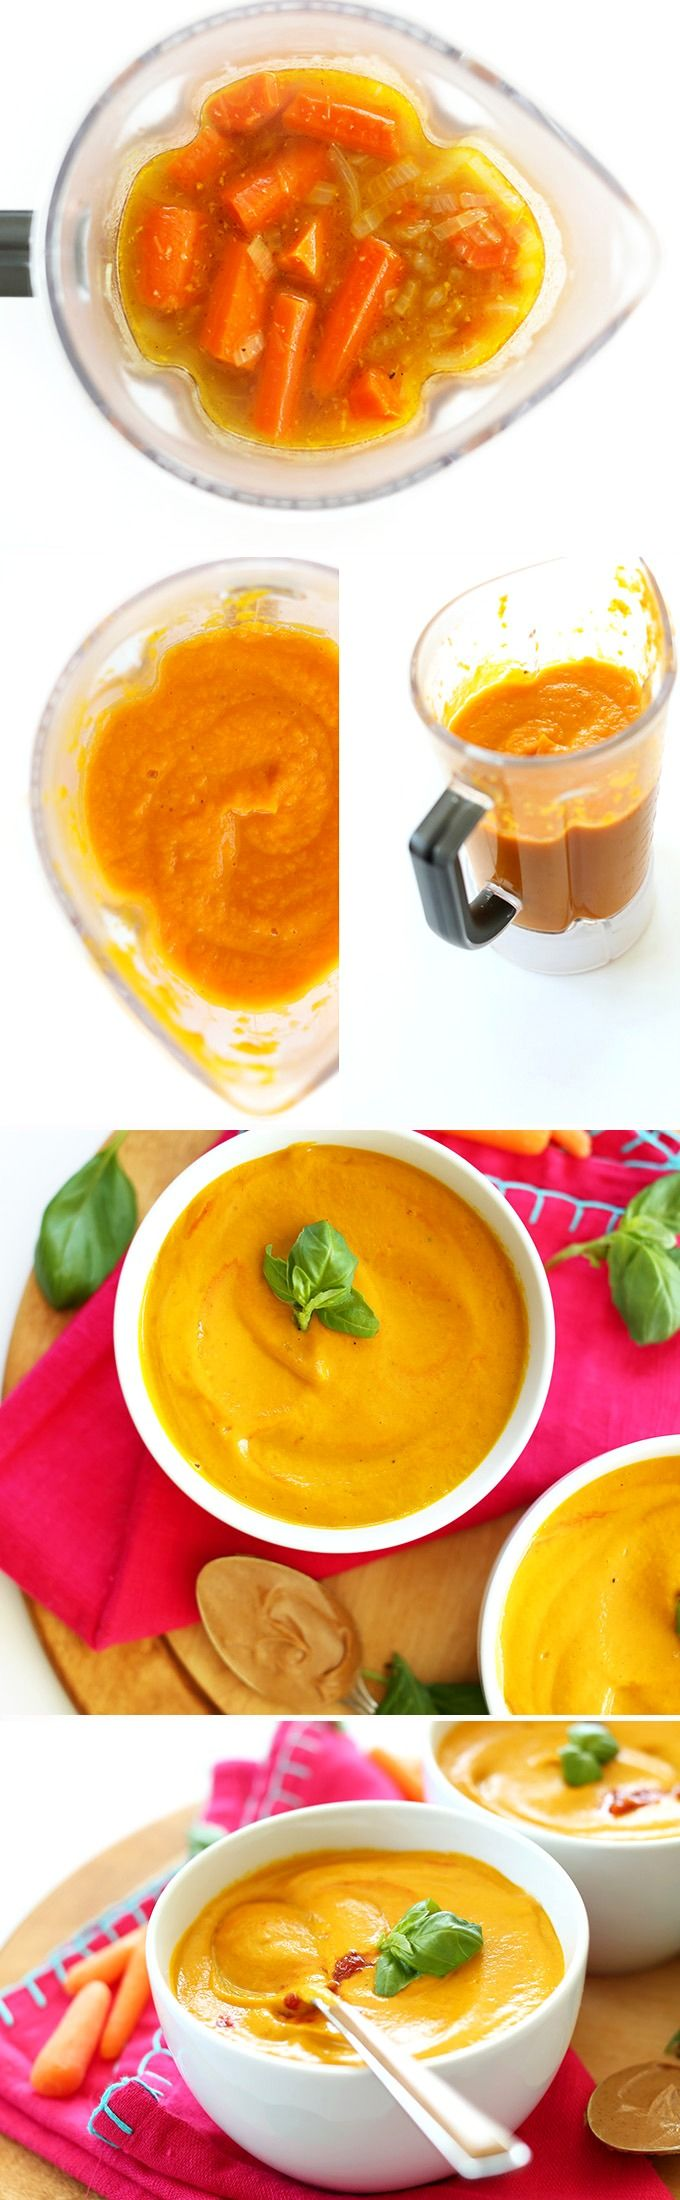 7 Ingredient Creamy Thai Carrot Soup with Basil! #Vegan, #glutenfree #healthy and SO delicious!